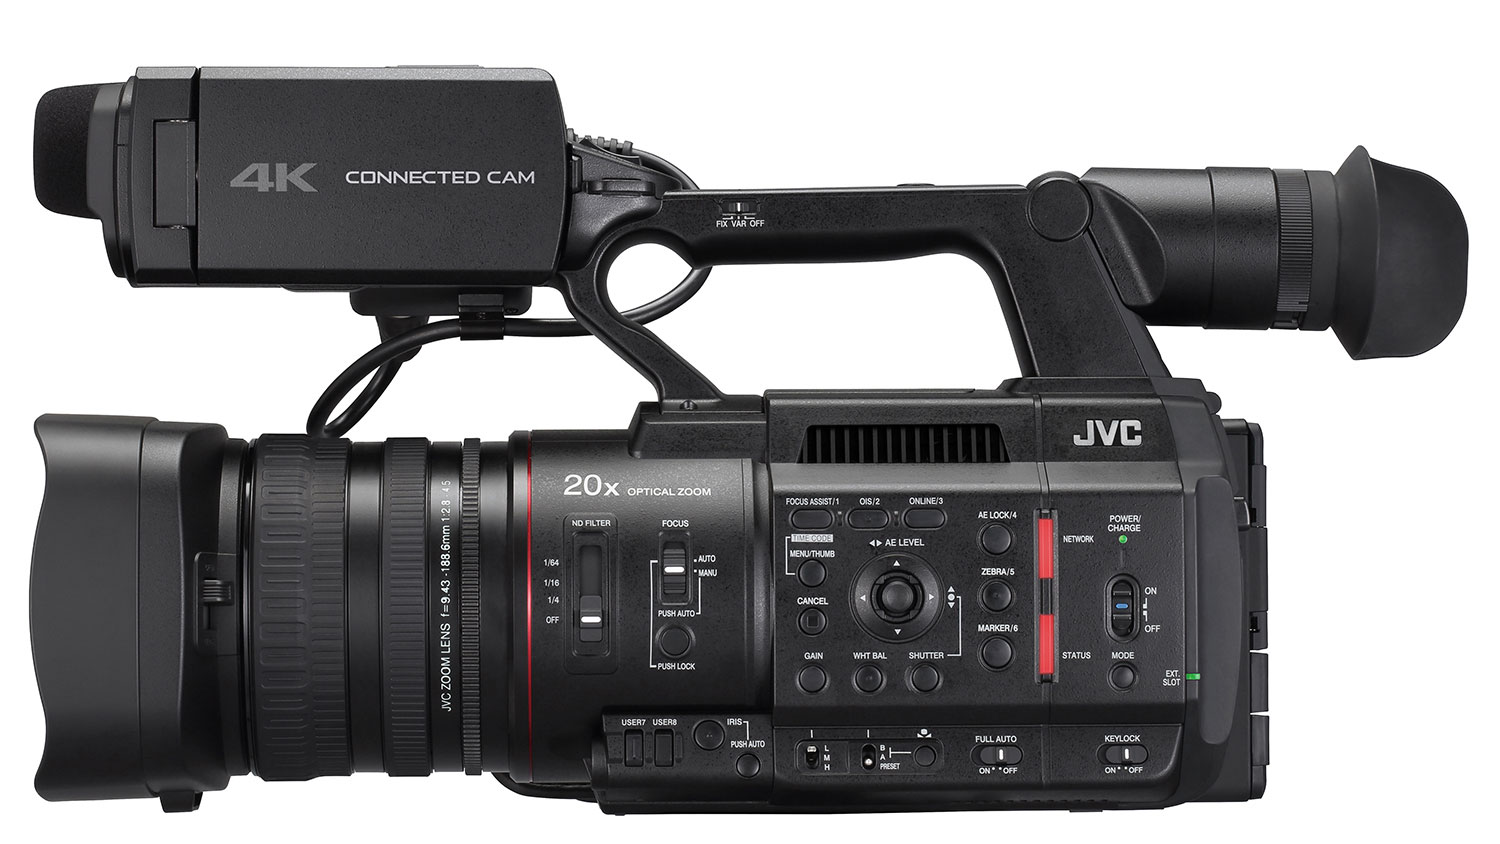 JVC Ships Connected Cam 500 Streaming Camcorders - Studio Daily